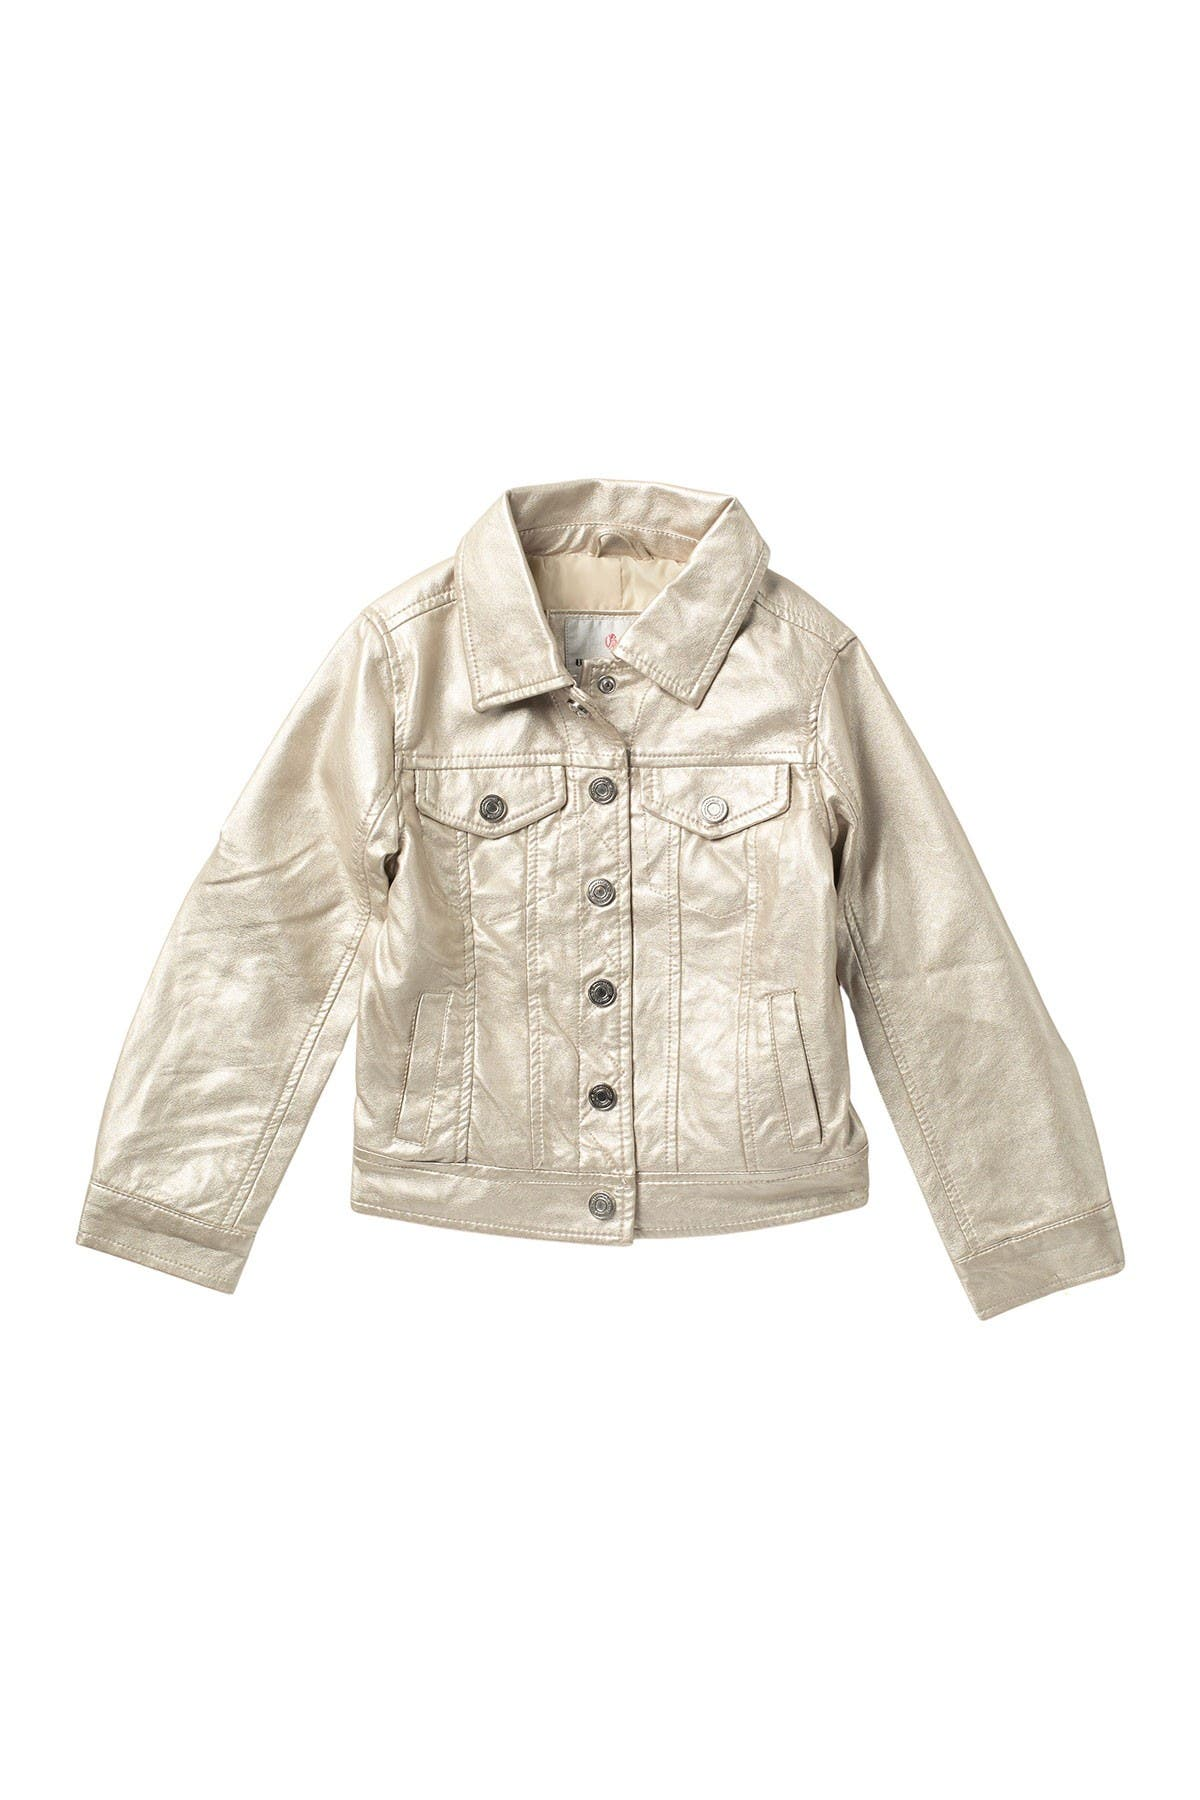 Image of Urban Republic Metallic Faux Leather Trucker Jacket